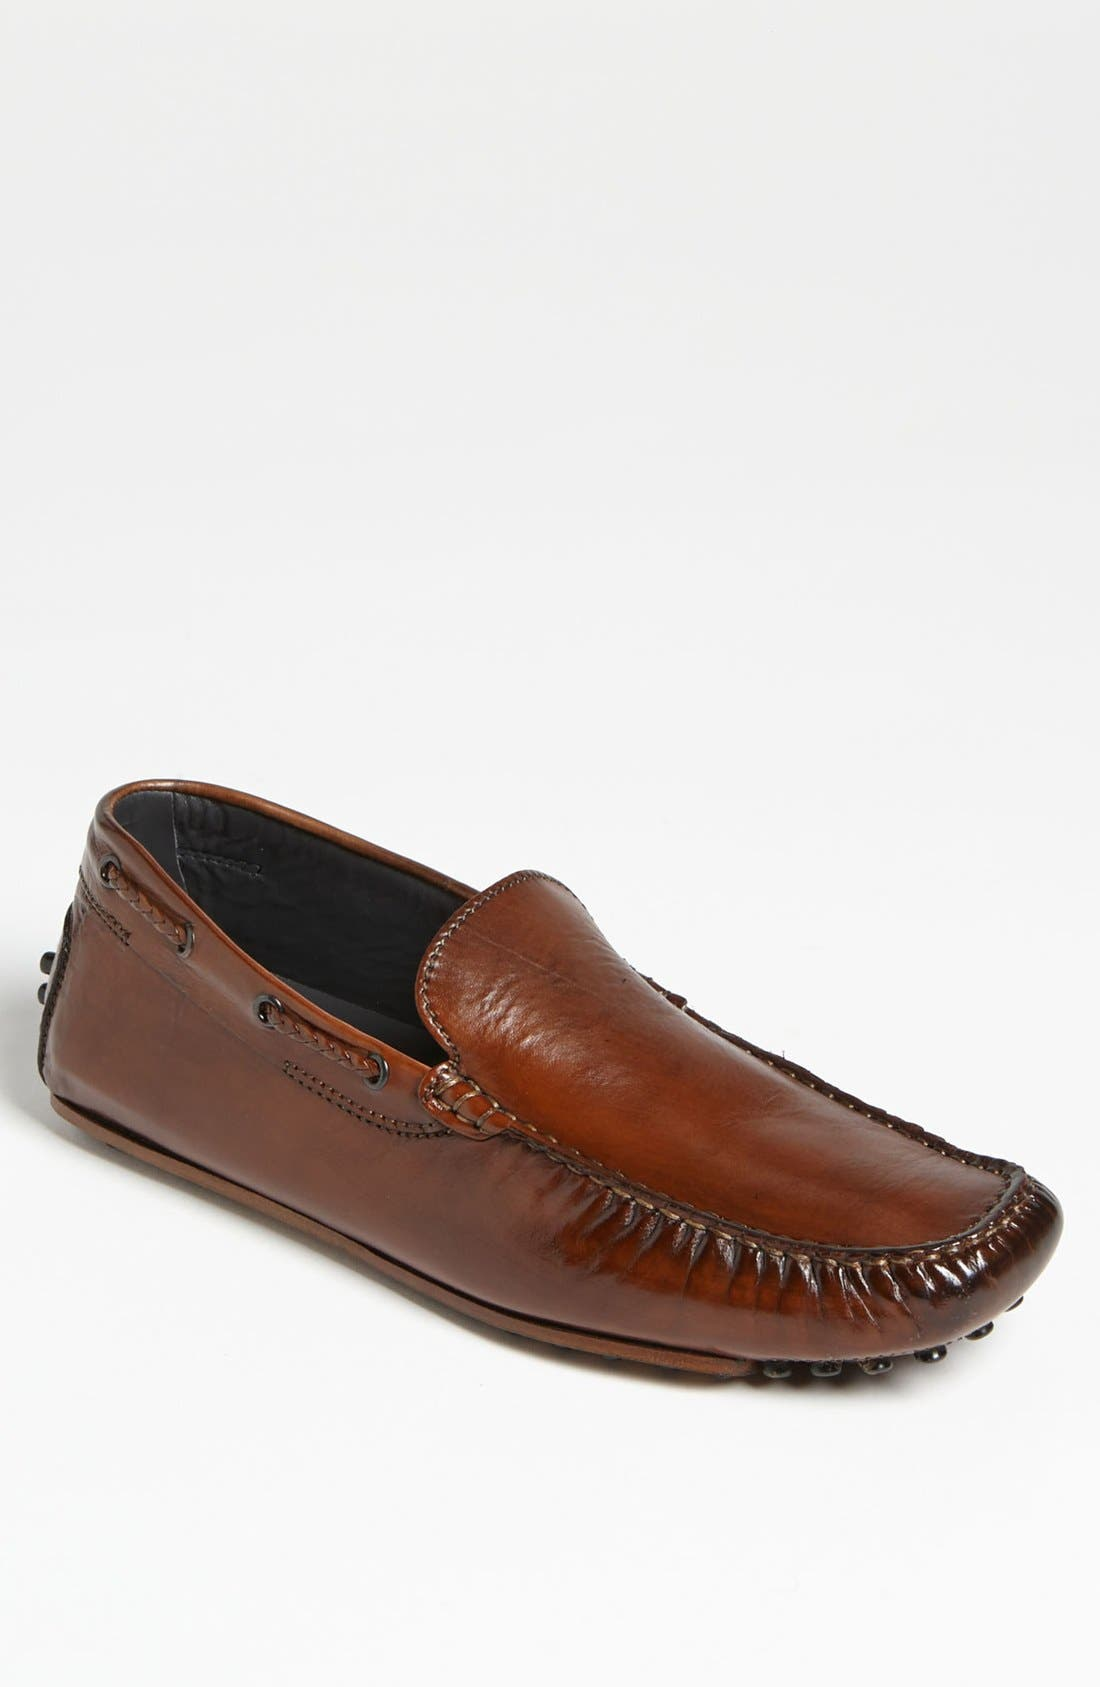 Alternate Image 1 Selected - To Boot New York 'Trumball' Driving Shoe